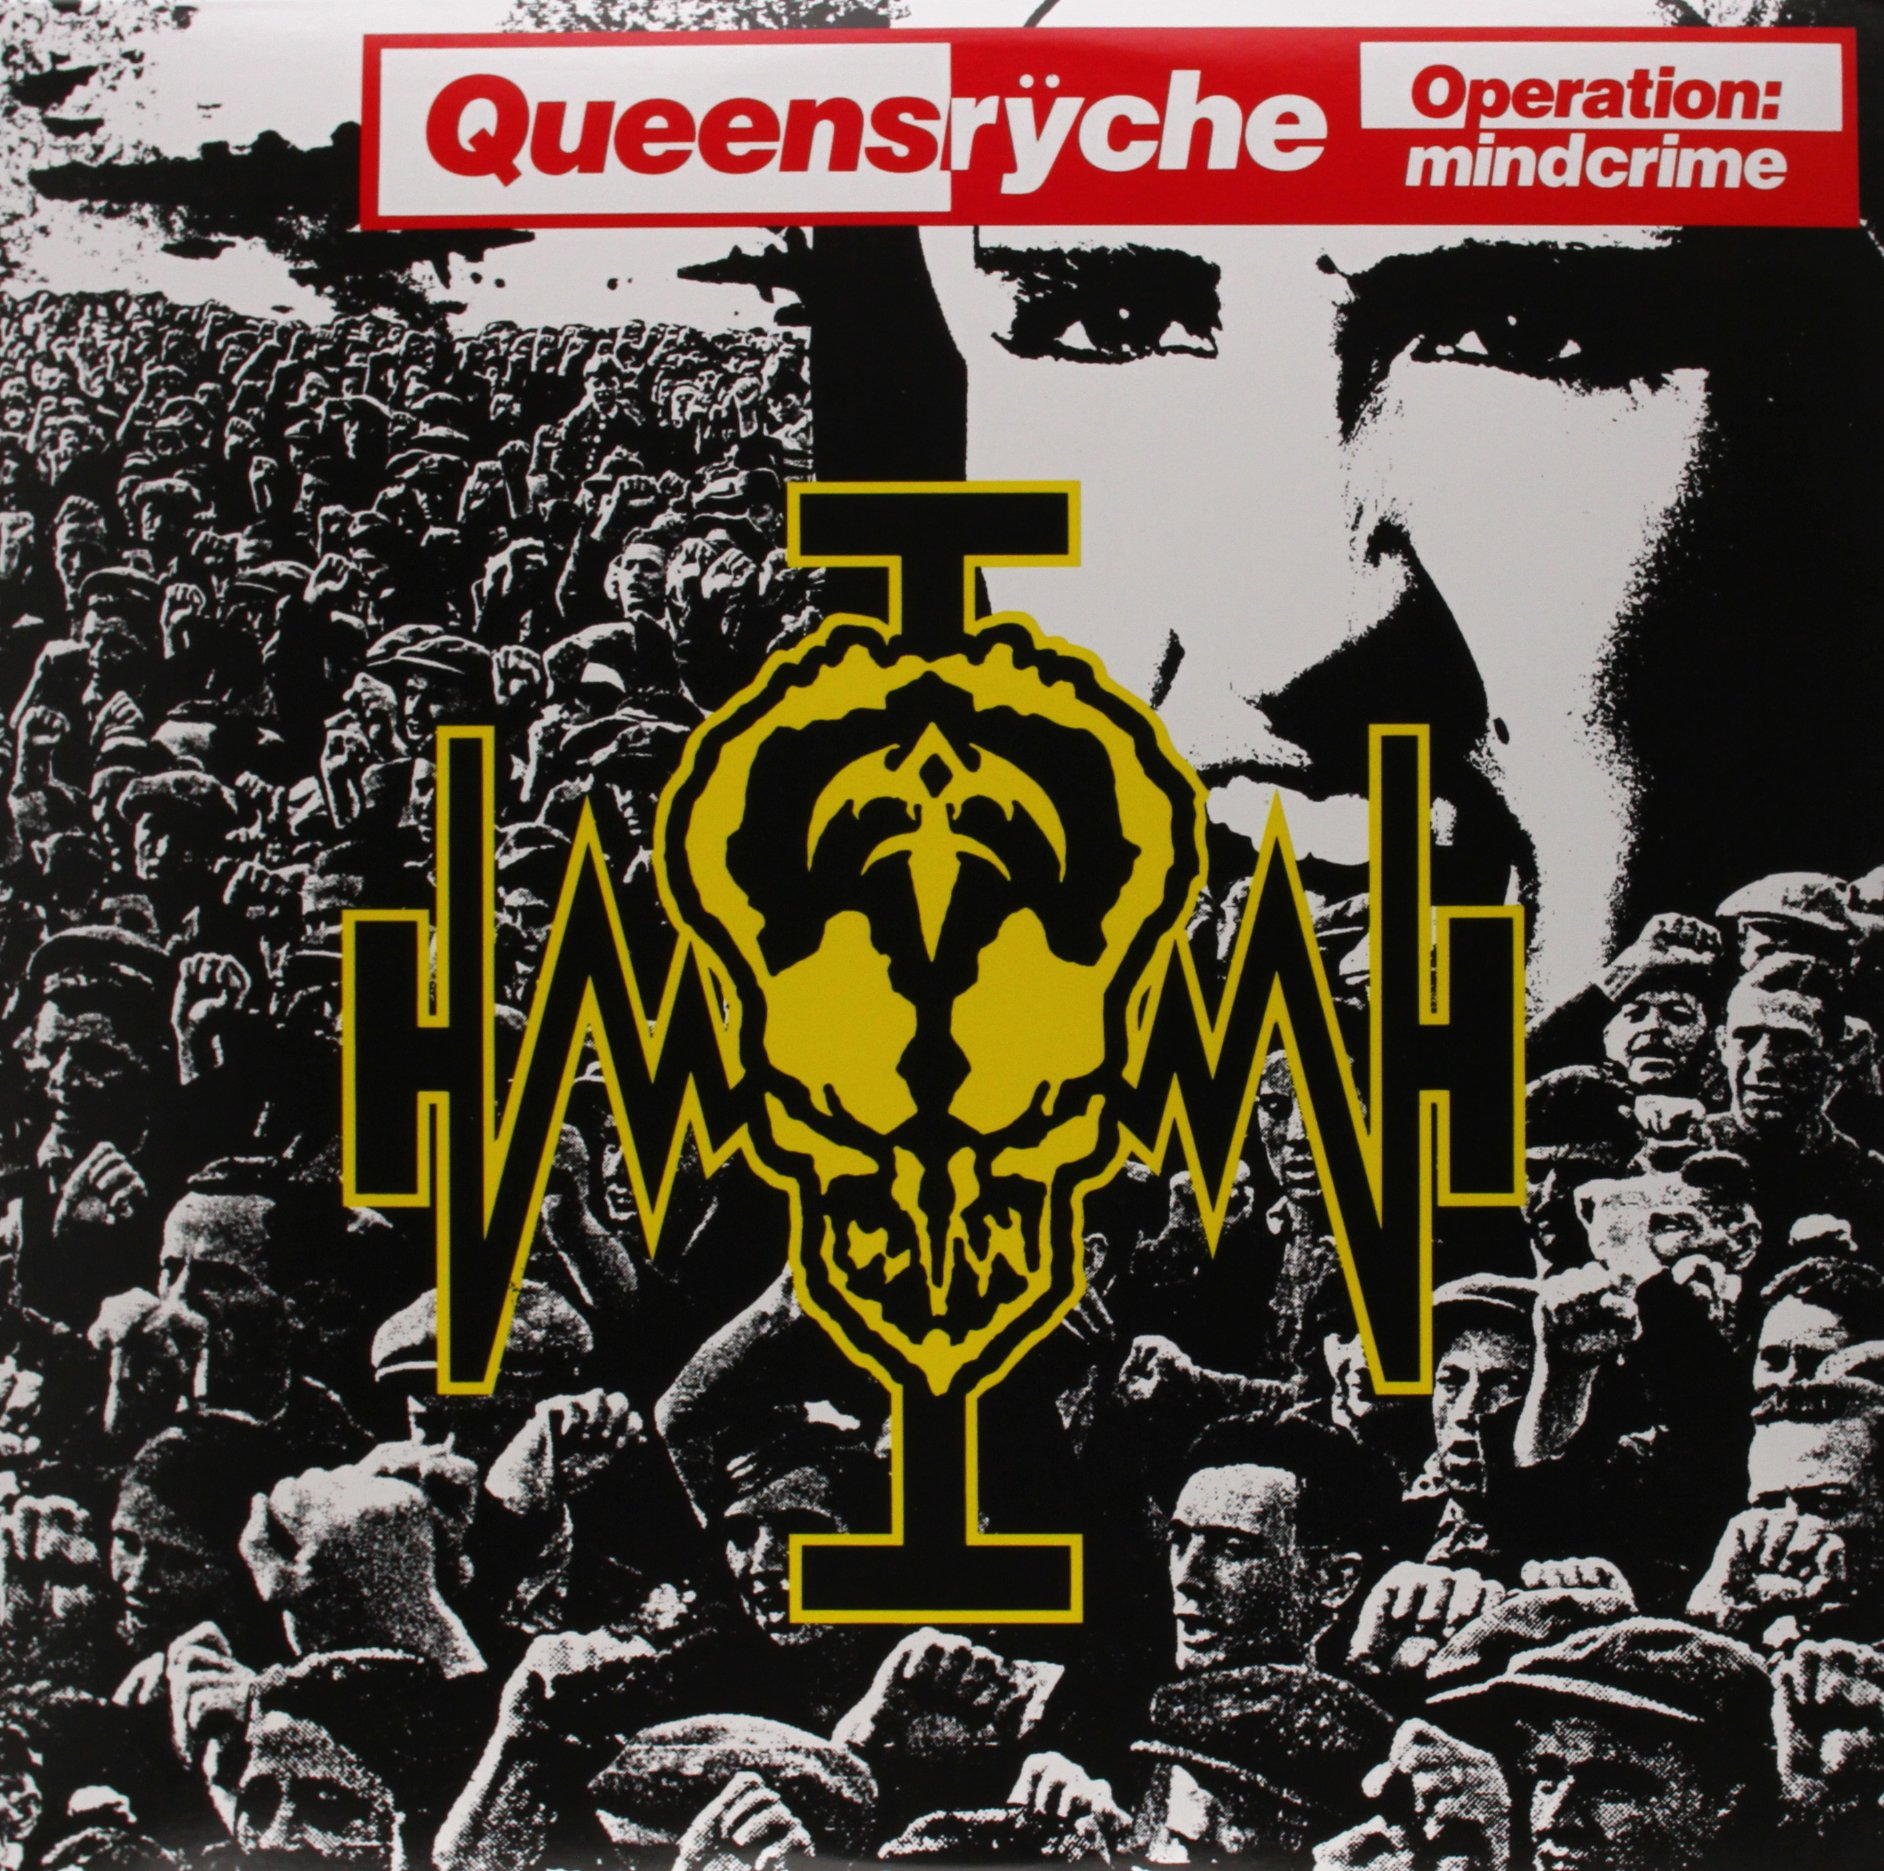 Vinilo : Queensryche - Operation Mindcrime (Limited Edition, 180 Gram Vinyl)